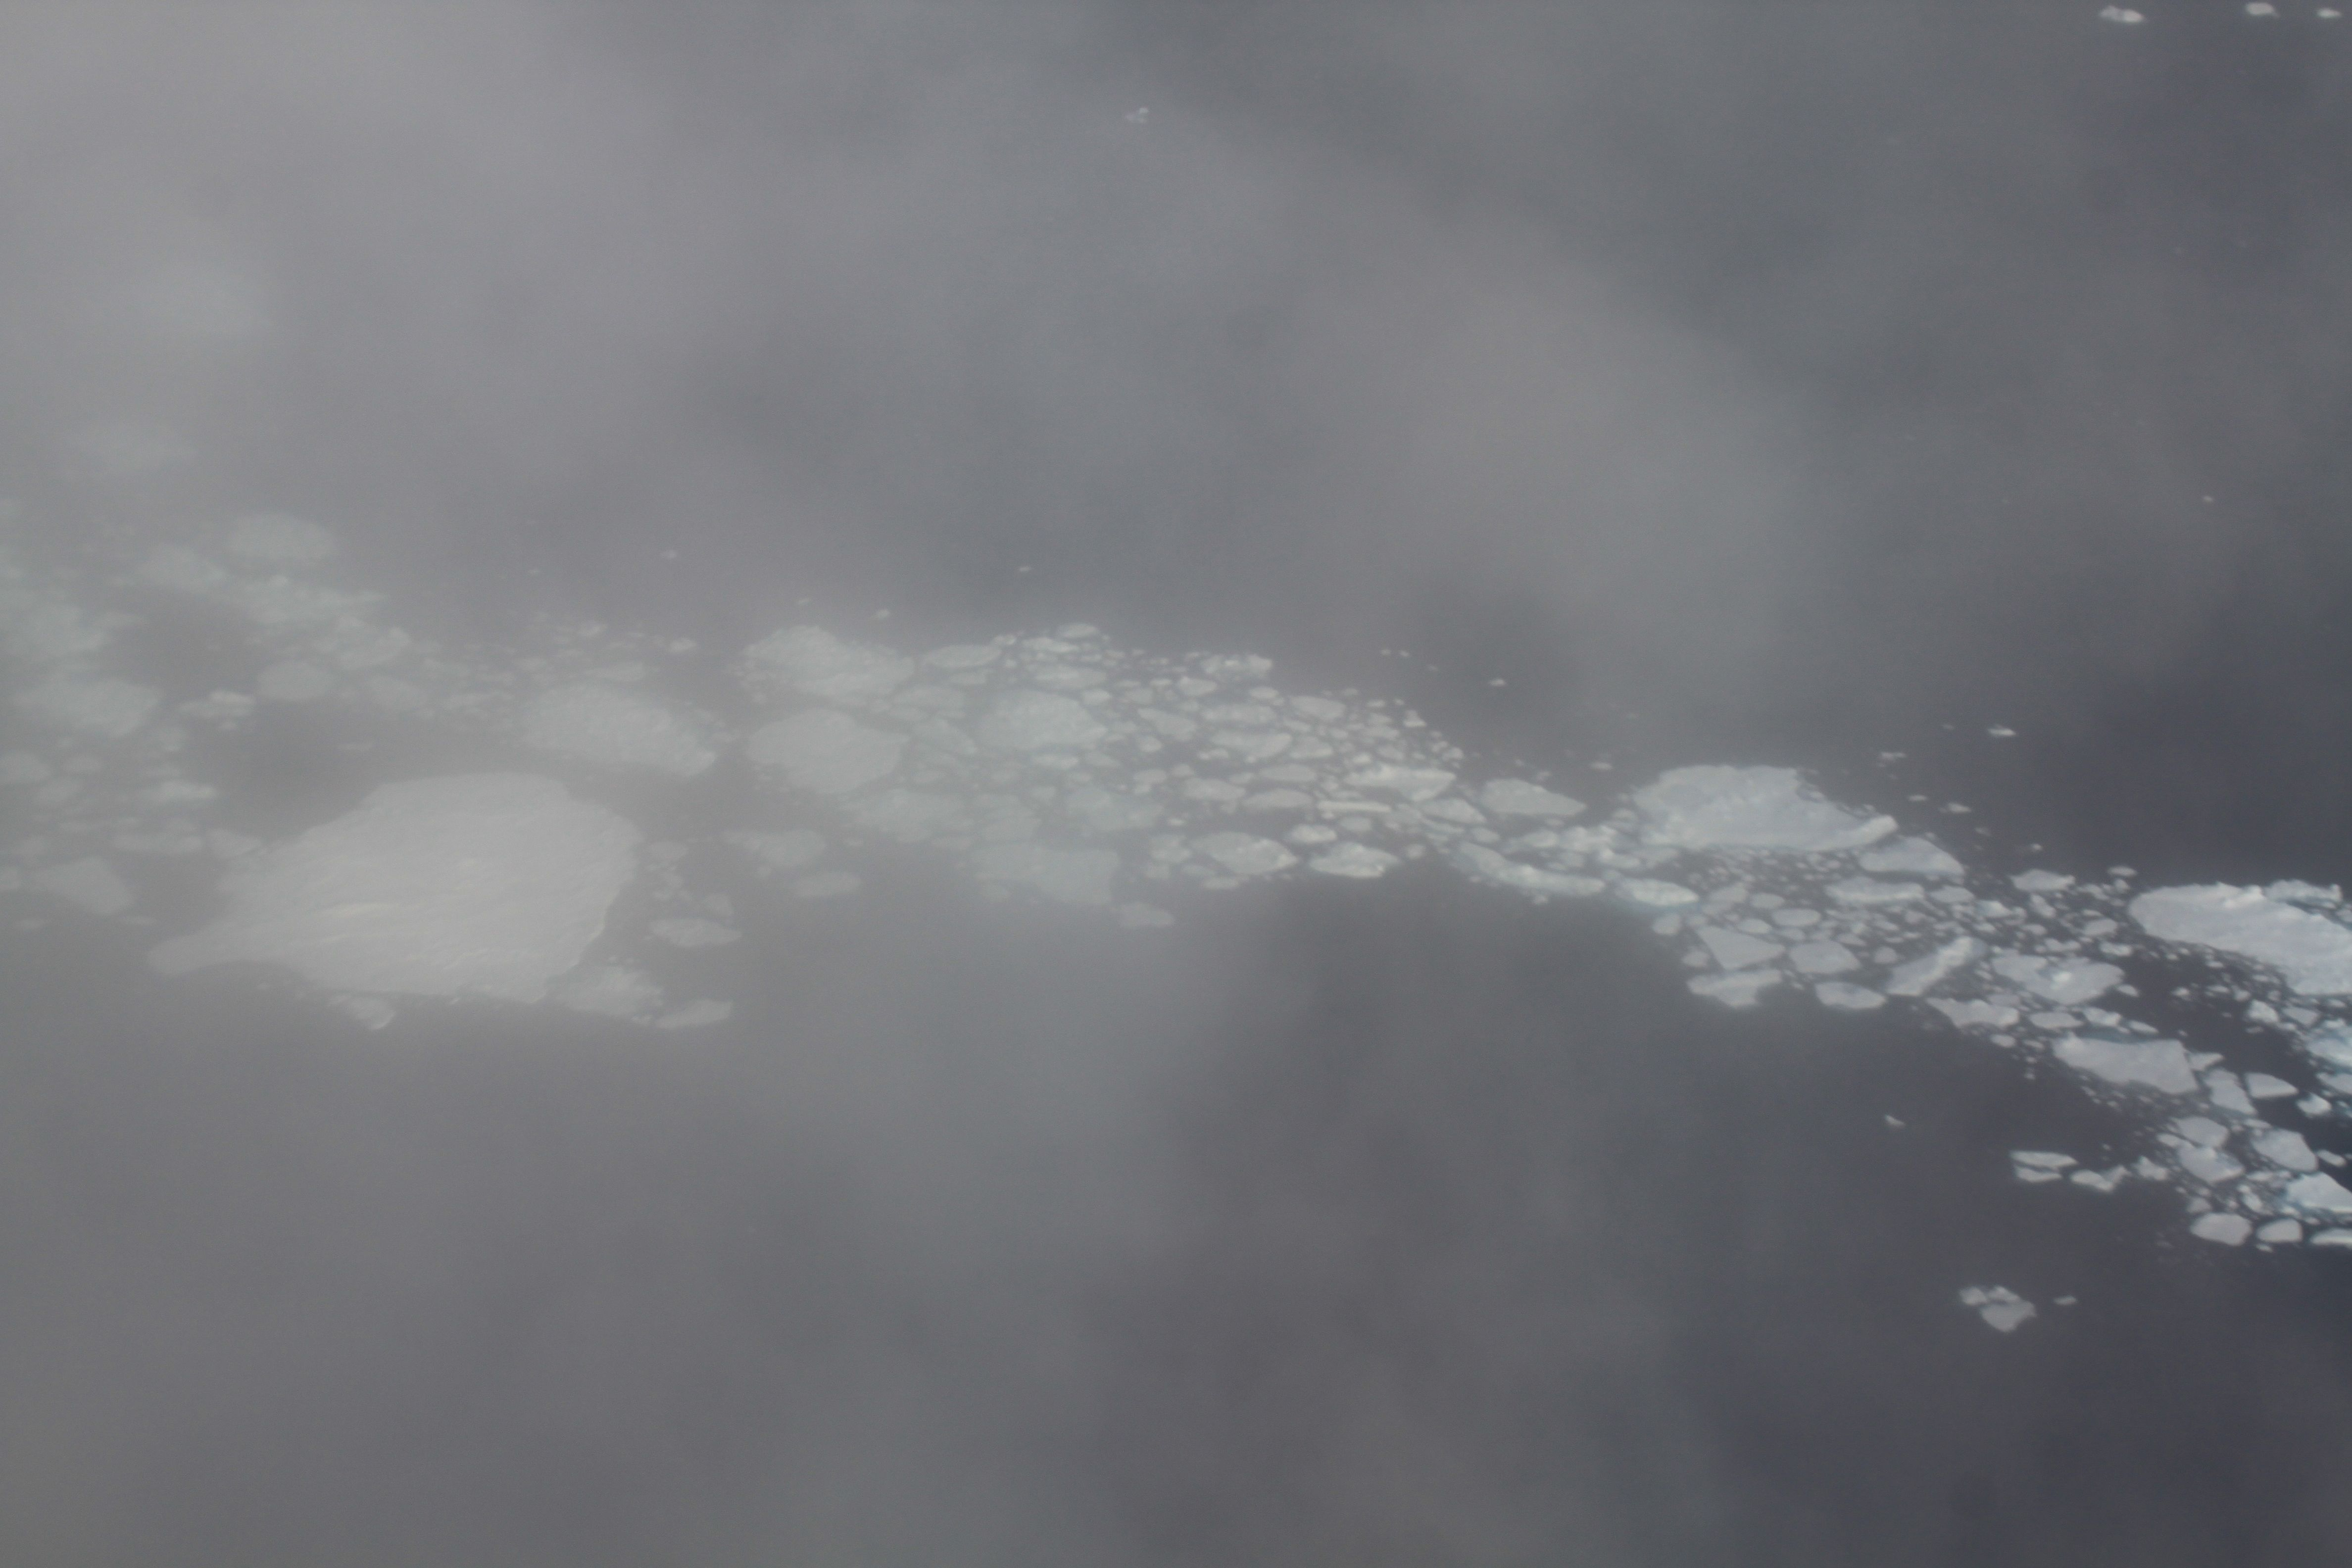 Sea ice through clouds